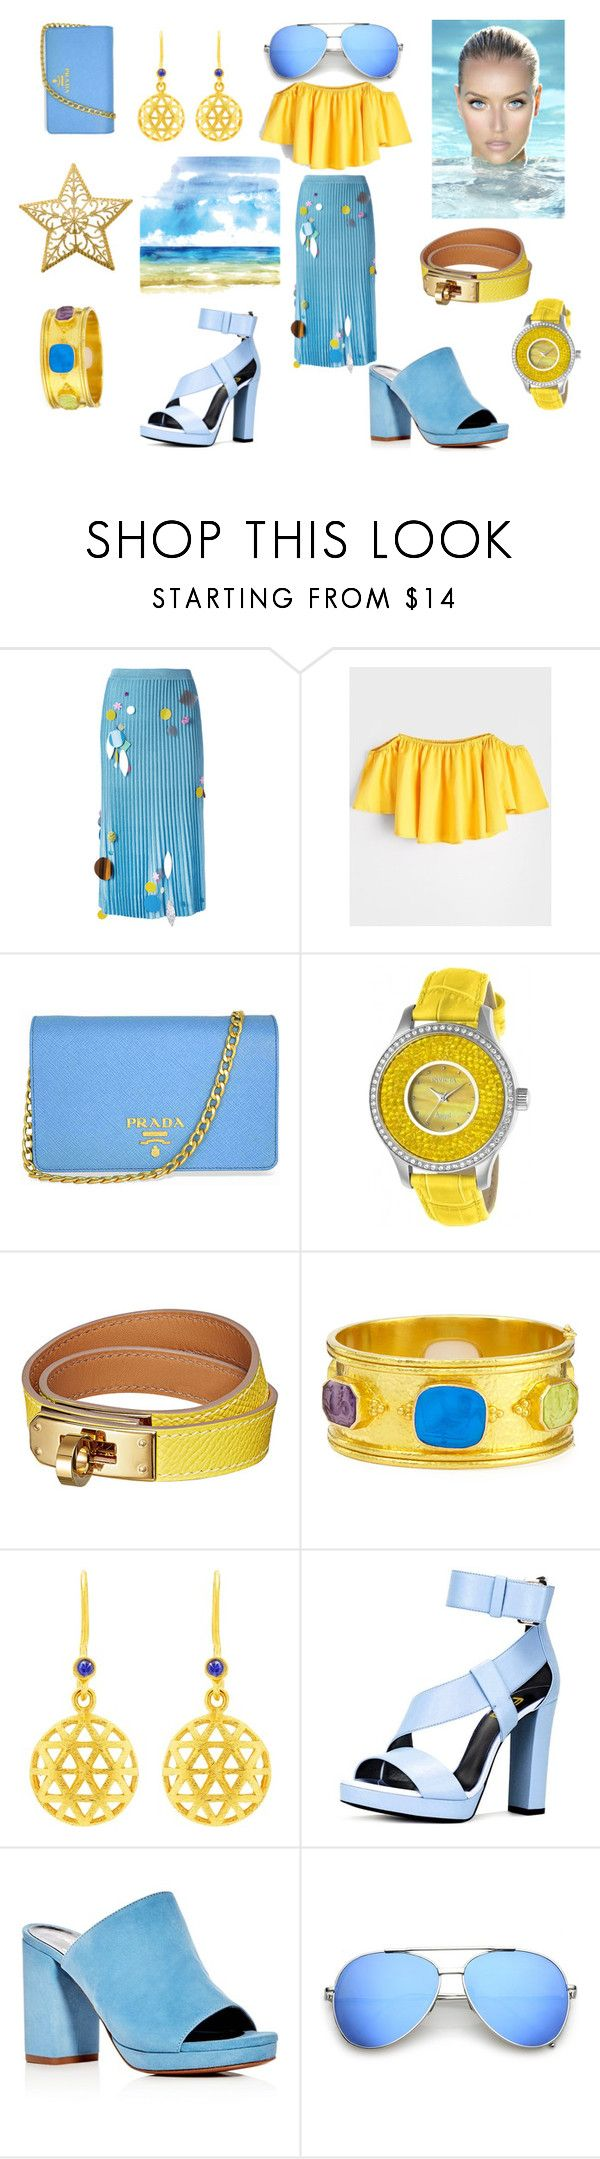 """""""Sand and Ocean"""" by mengovat ❤ liked on Polyvore featuring Christopher Kane, Prada, Invicta, Elizabeth Locke, Auren and Robert Clergerie"""